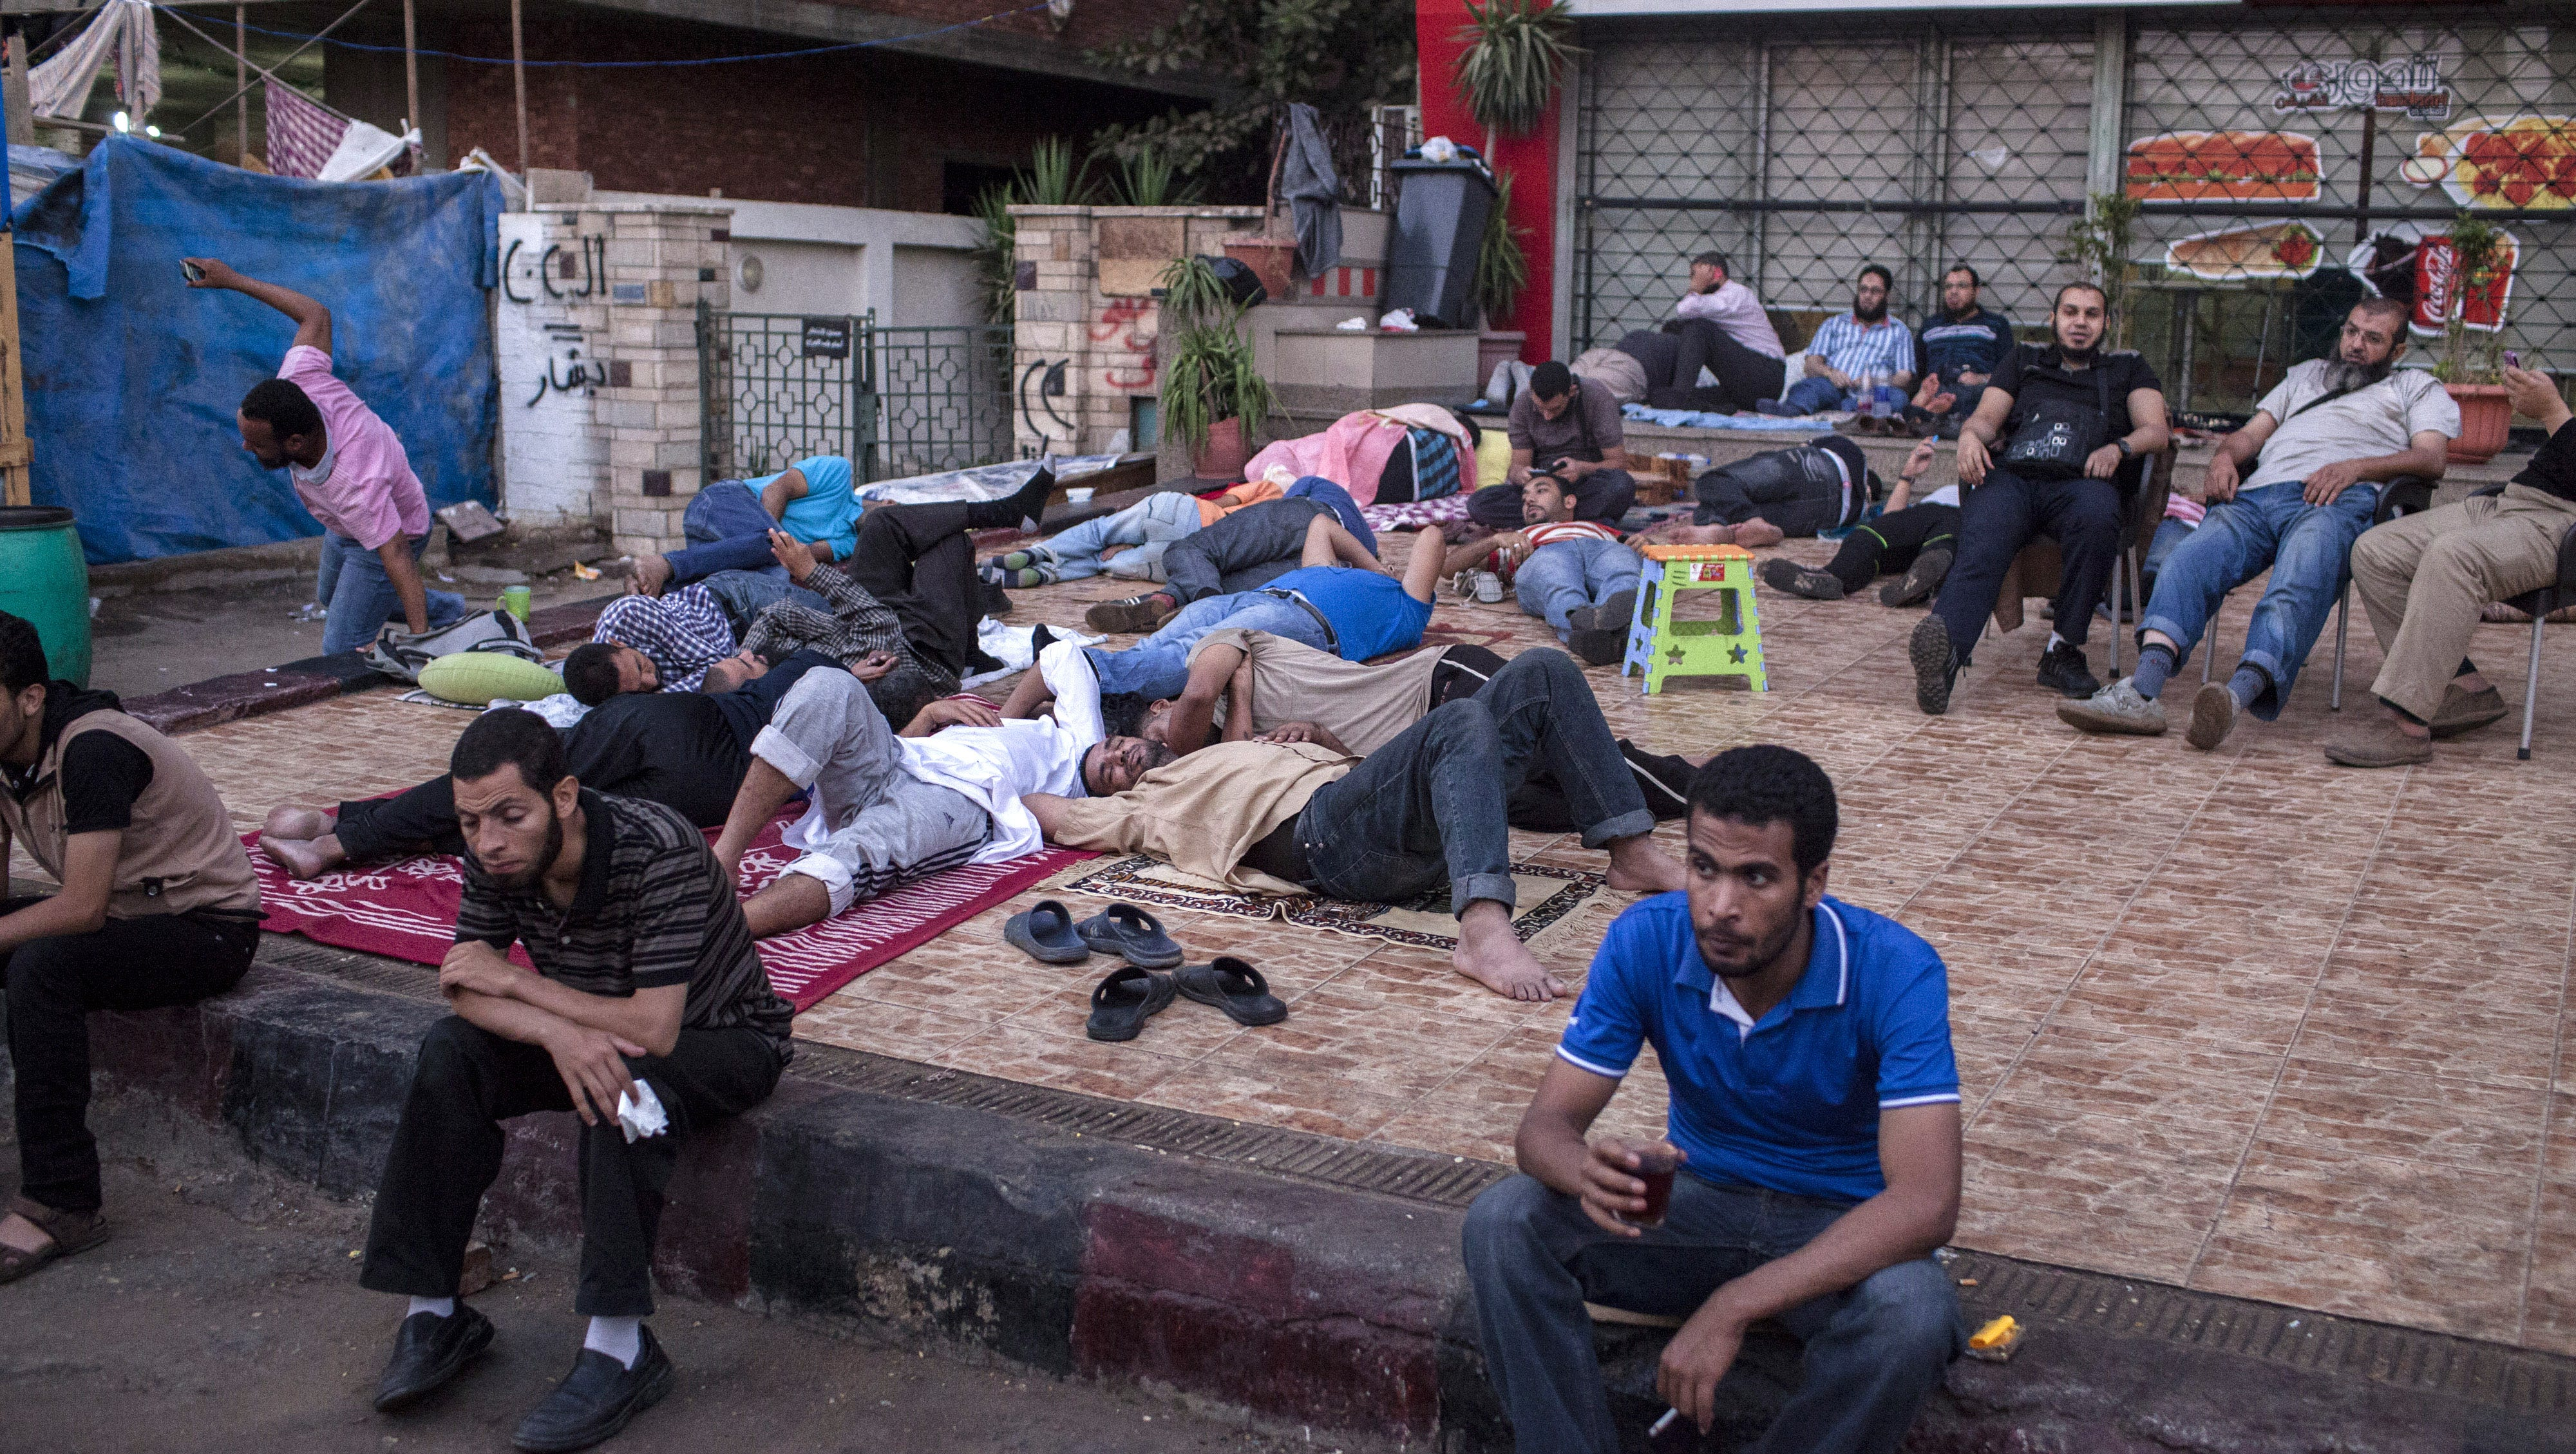 Morsi supporters attend a sit-in demonstration near the Rabaa al-Adweya Mosque in Cairo. Egyptian security forces have threatened a siege of pro-Morsi protest camps.